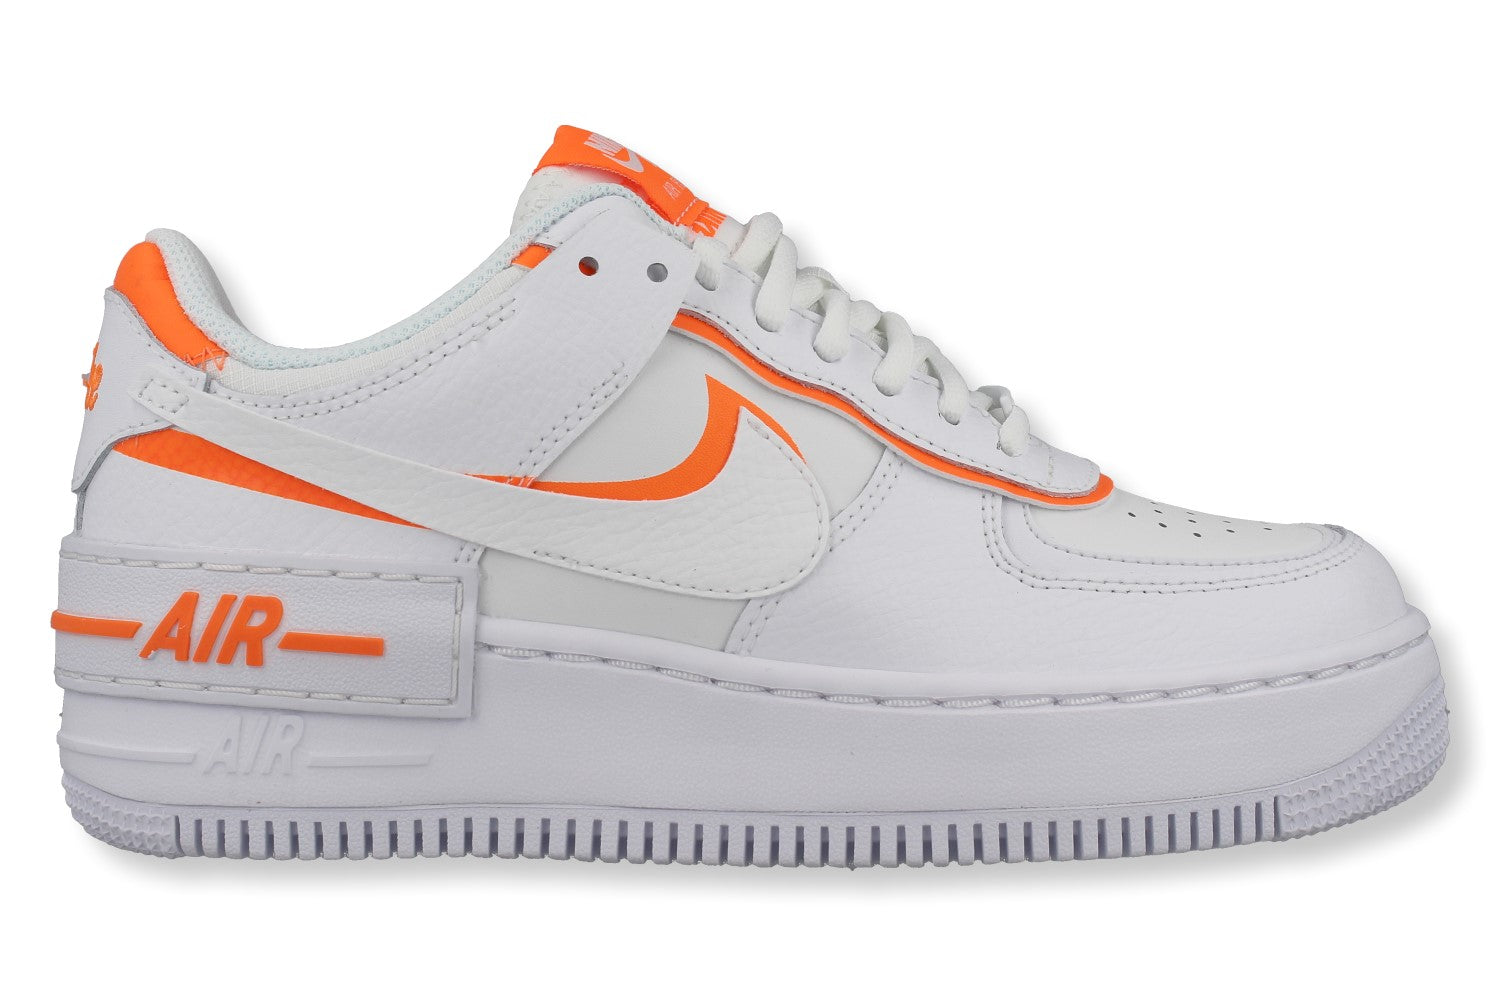 WMNS Air Force 1 Shadow - Schrittmacher Shop